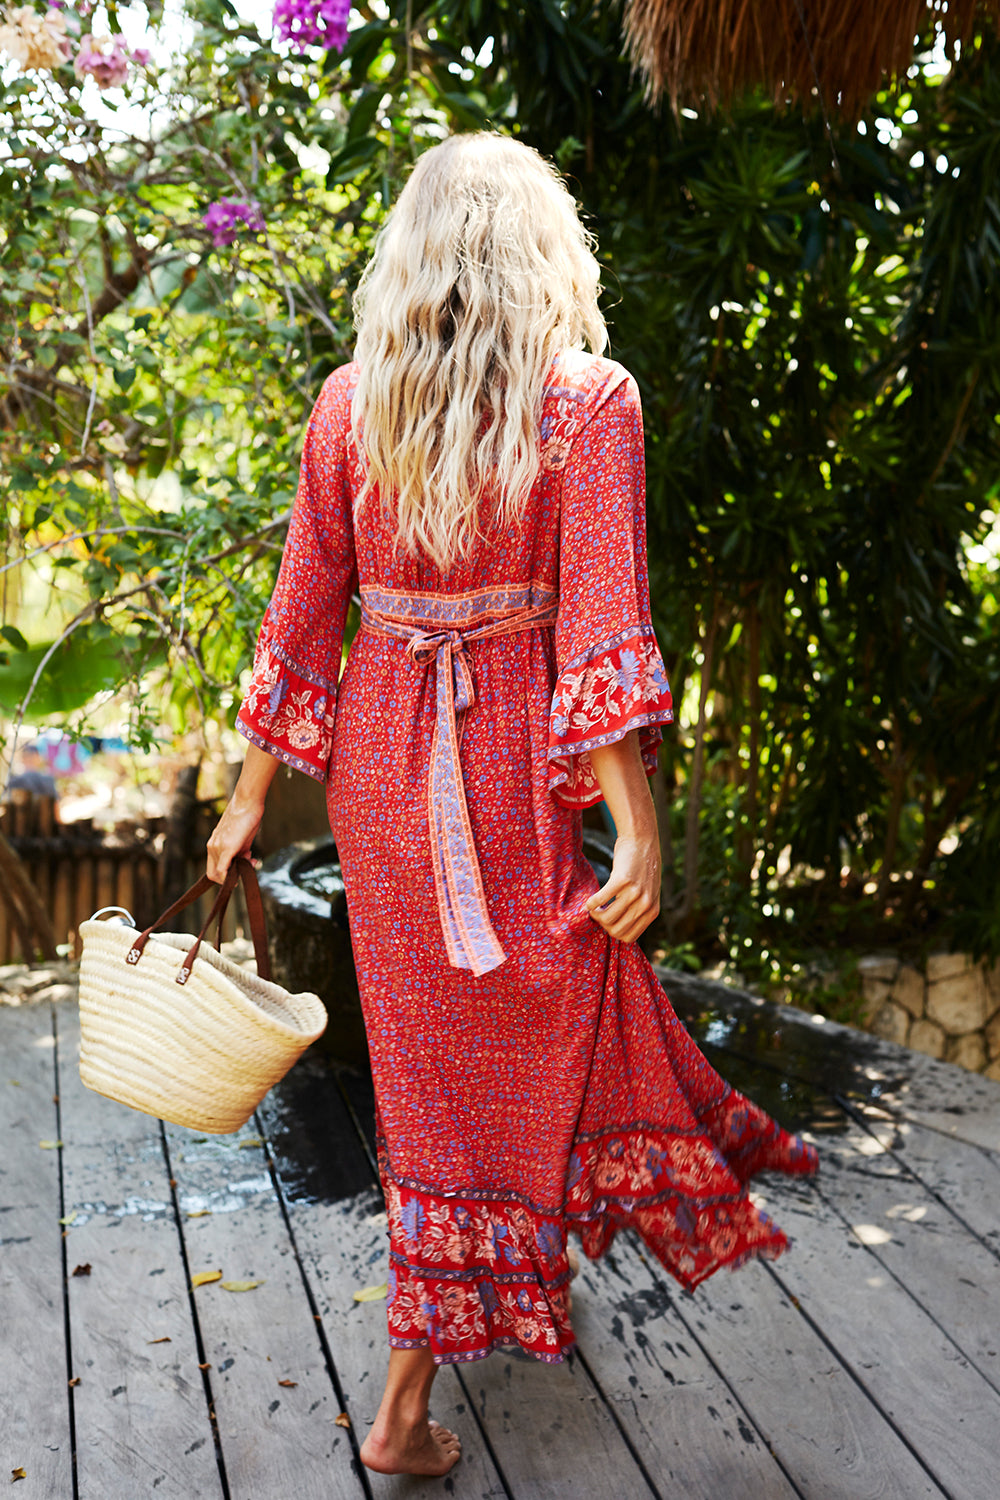 Ophelia Maxi Dress in Salsa